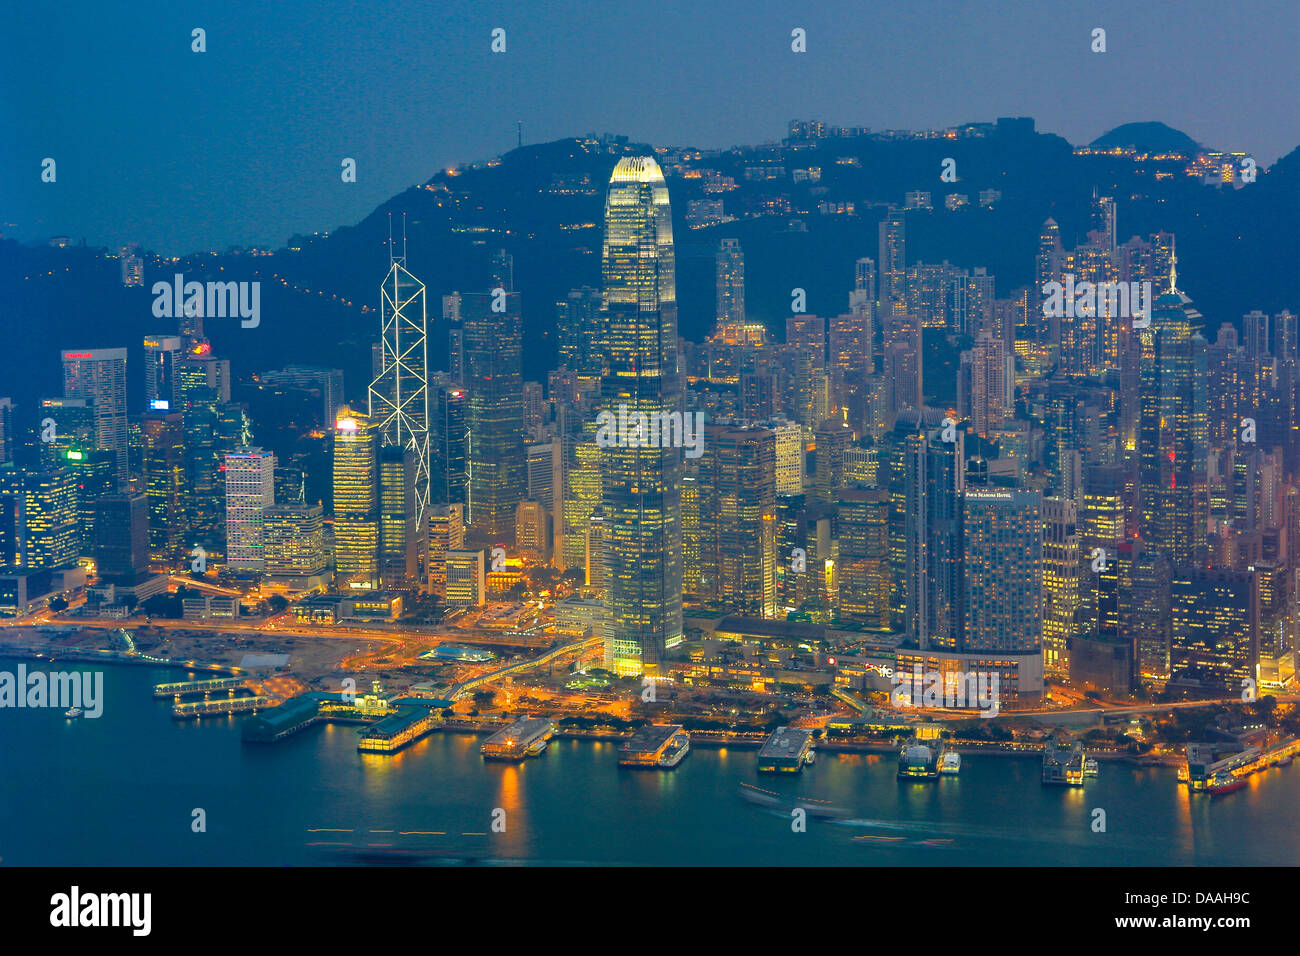 Hong Kong, Chine, Asie, ville, Kowloon, Hong Kong, Chine, l'Asie, de l'ICC, Building, Central, lumières, Photo Stock